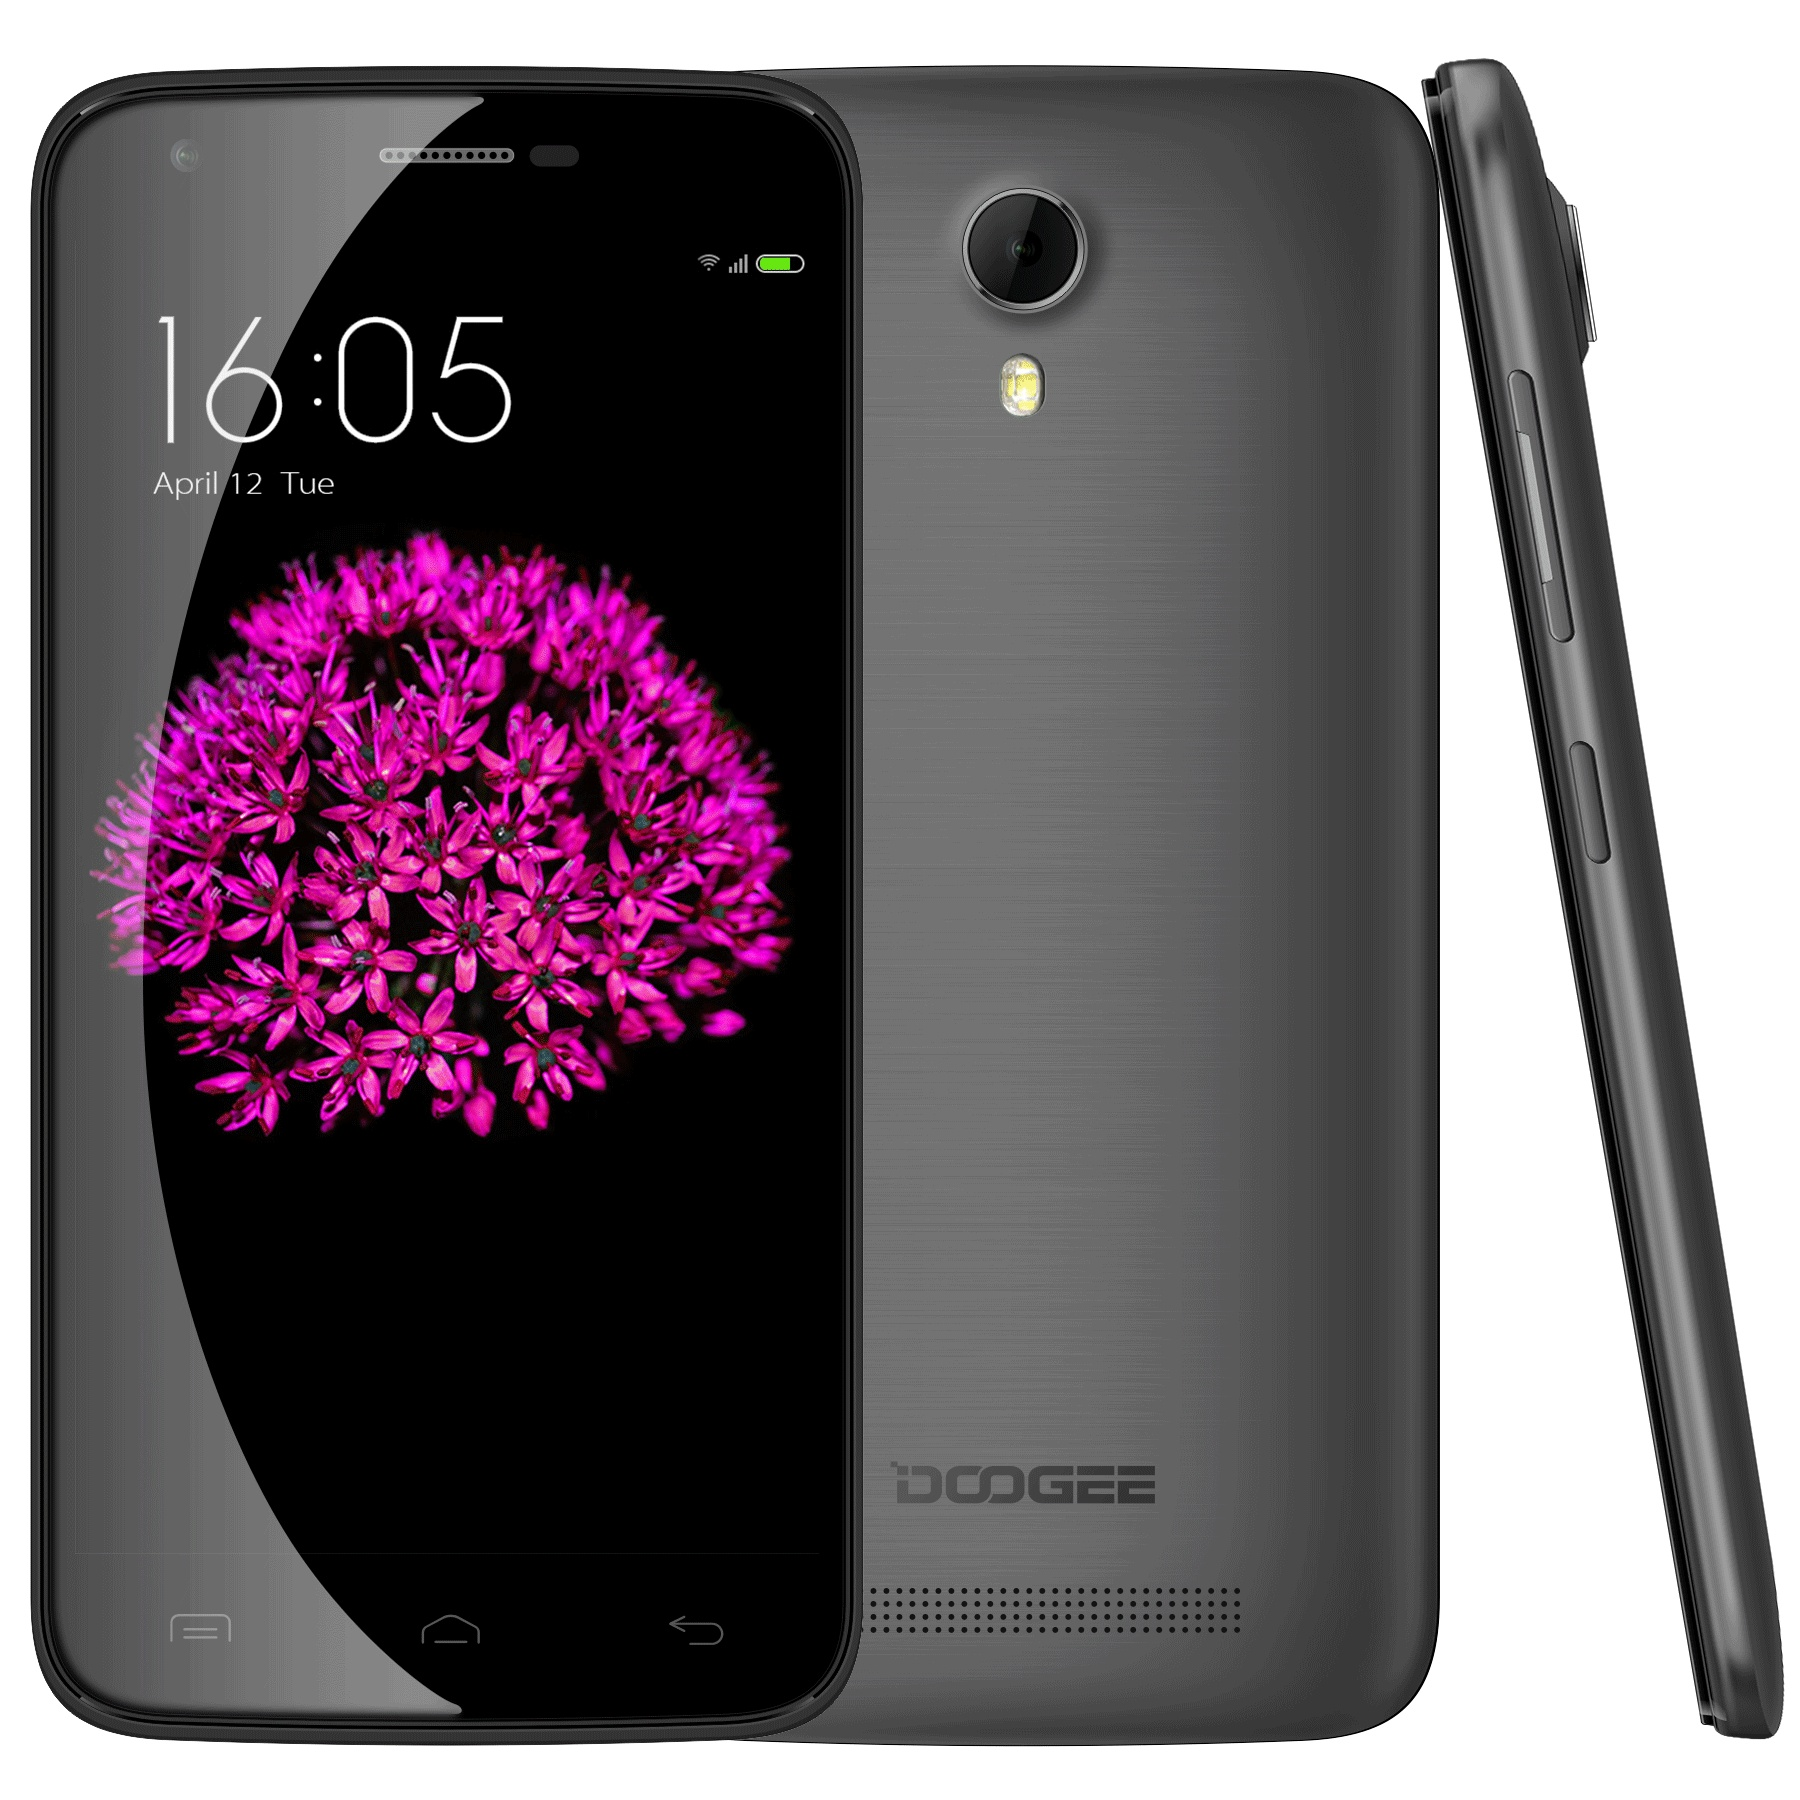 DOOGEE VALENCIA2 Y100 Pro Smartphone 5.0 Inch 4G MTK6735P Android 5.1 2GB 16GB Black